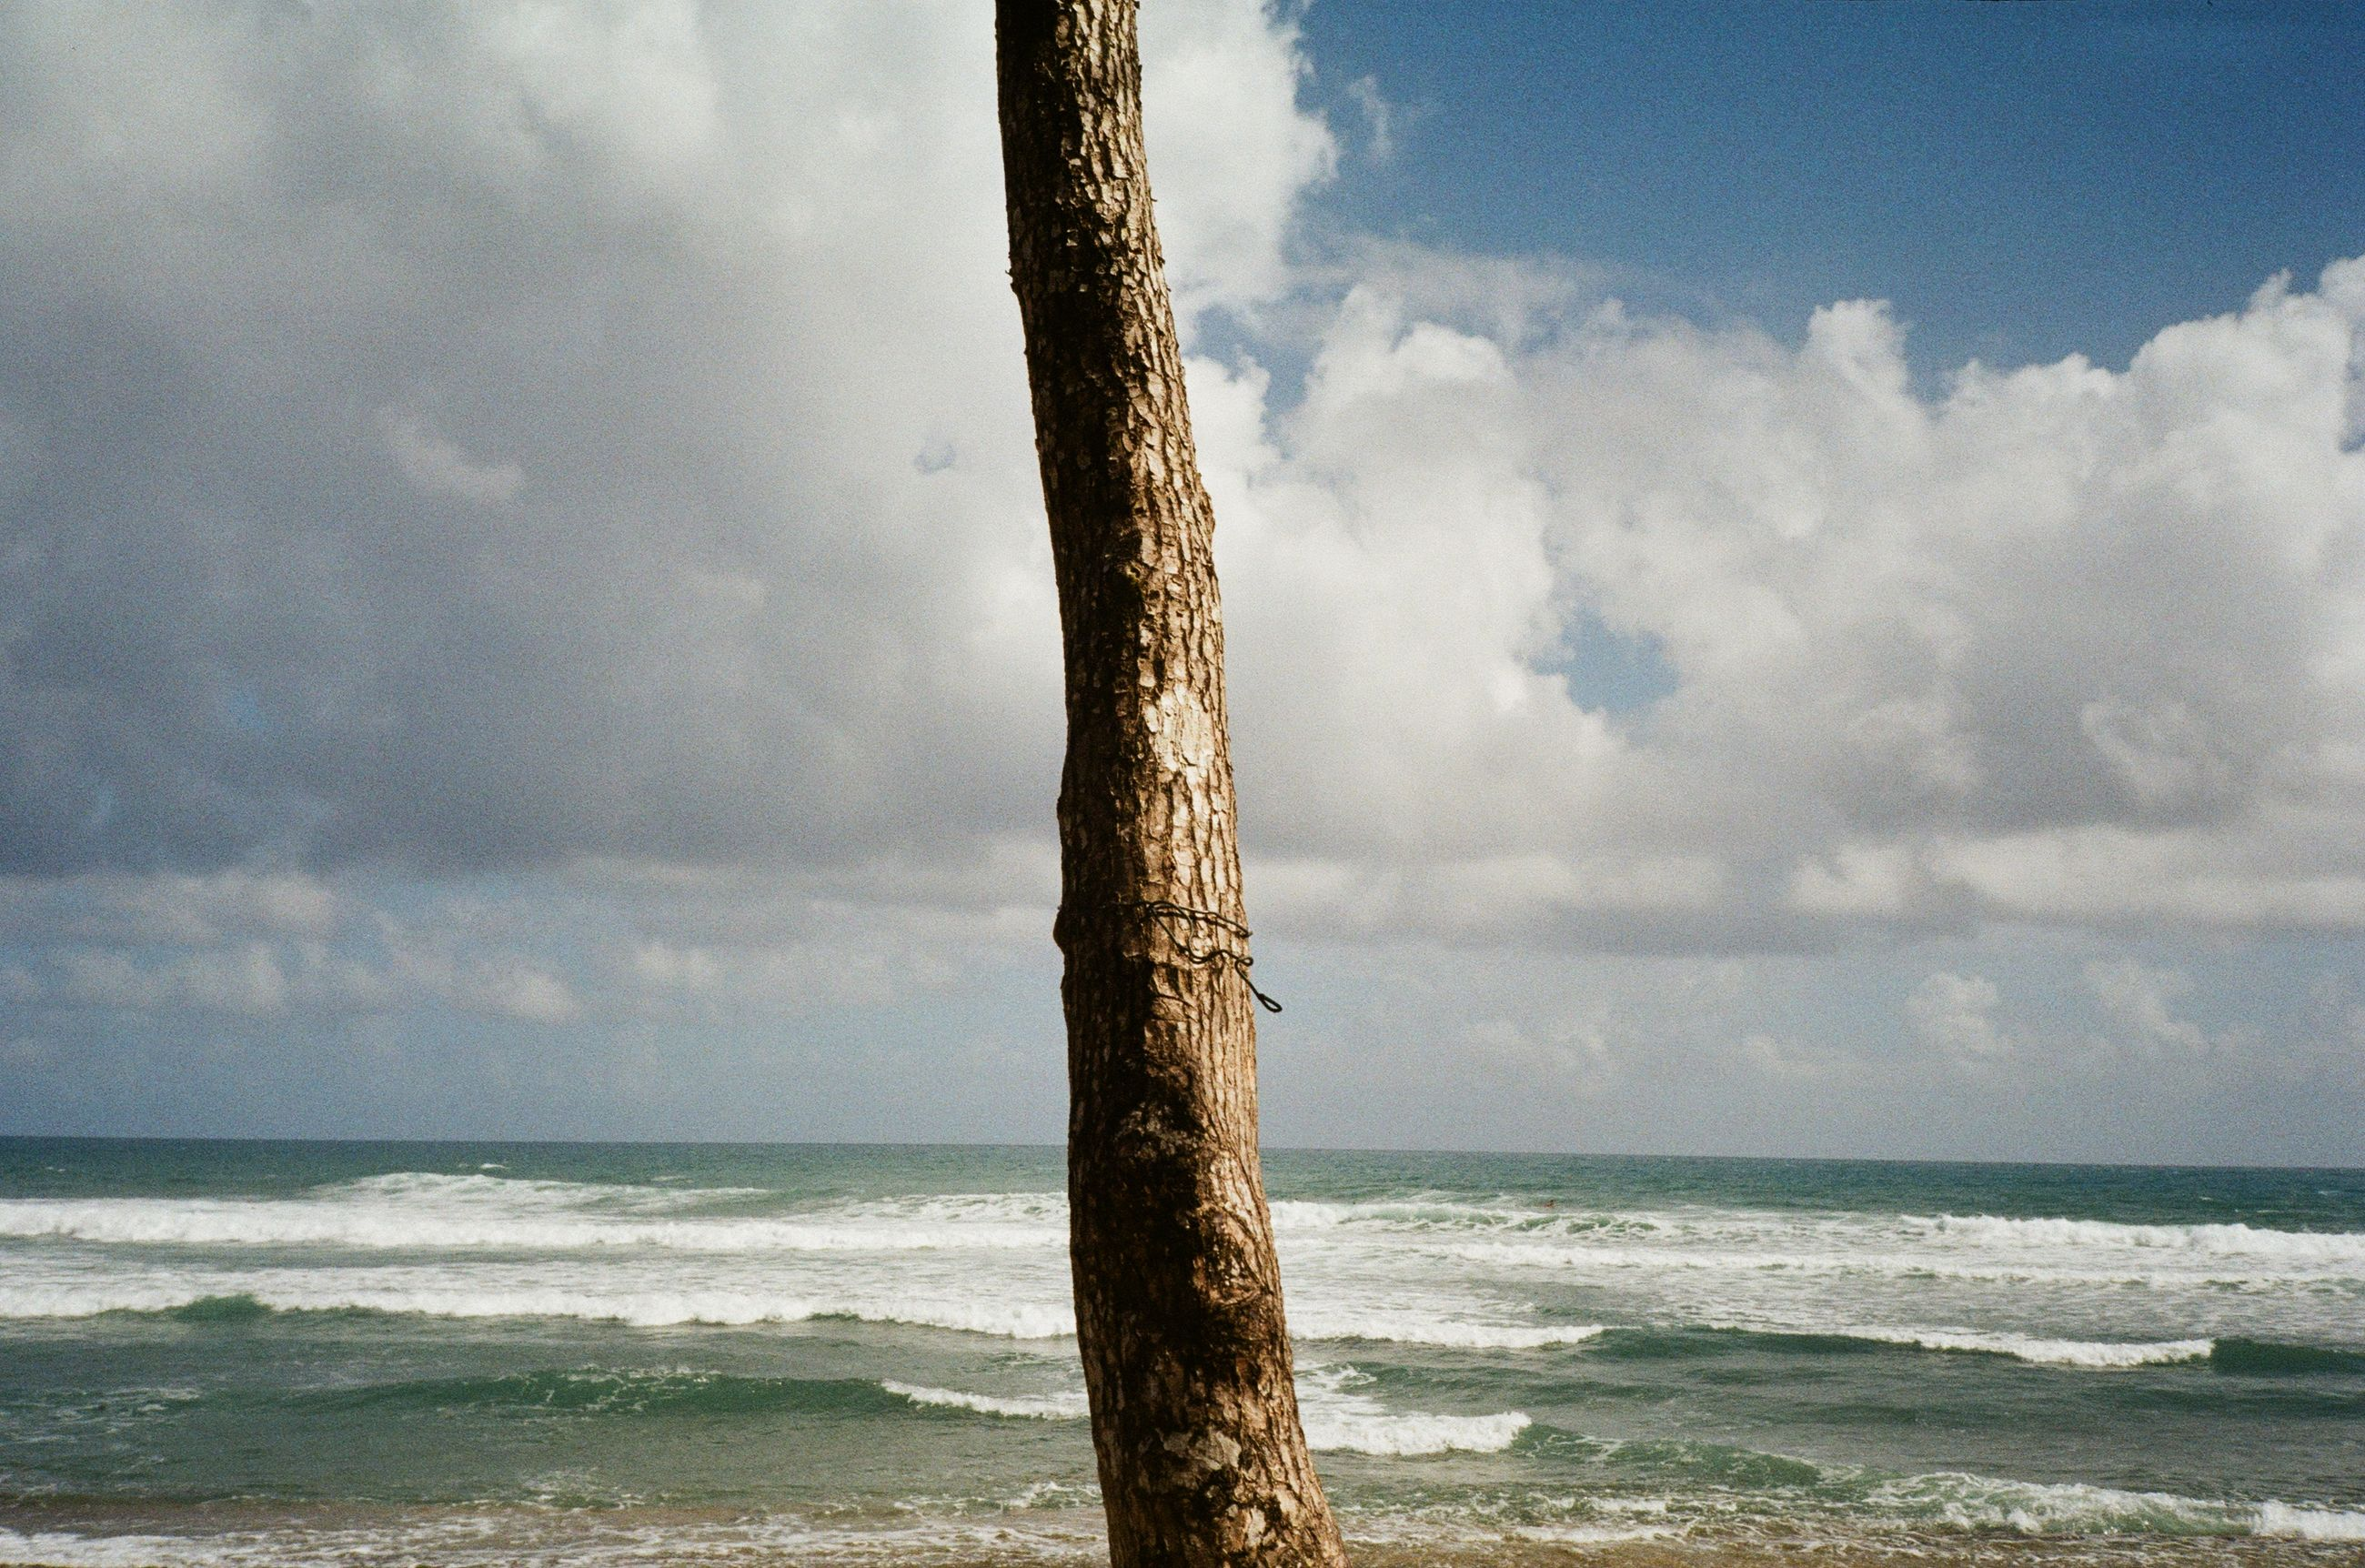 sea, water, sky, land, beach, cloud, body of water, ocean, shore, nature, beauty in nature, horizon over water, horizon, wave, scenics - nature, coast, motion, wind wave, wind, tree, no people, tranquility, sports, tree trunk, rock, environment, outdoors, day, trunk, tranquil scene, tropical climate, storm, sand, plant, travel destinations, idyllic, water sports